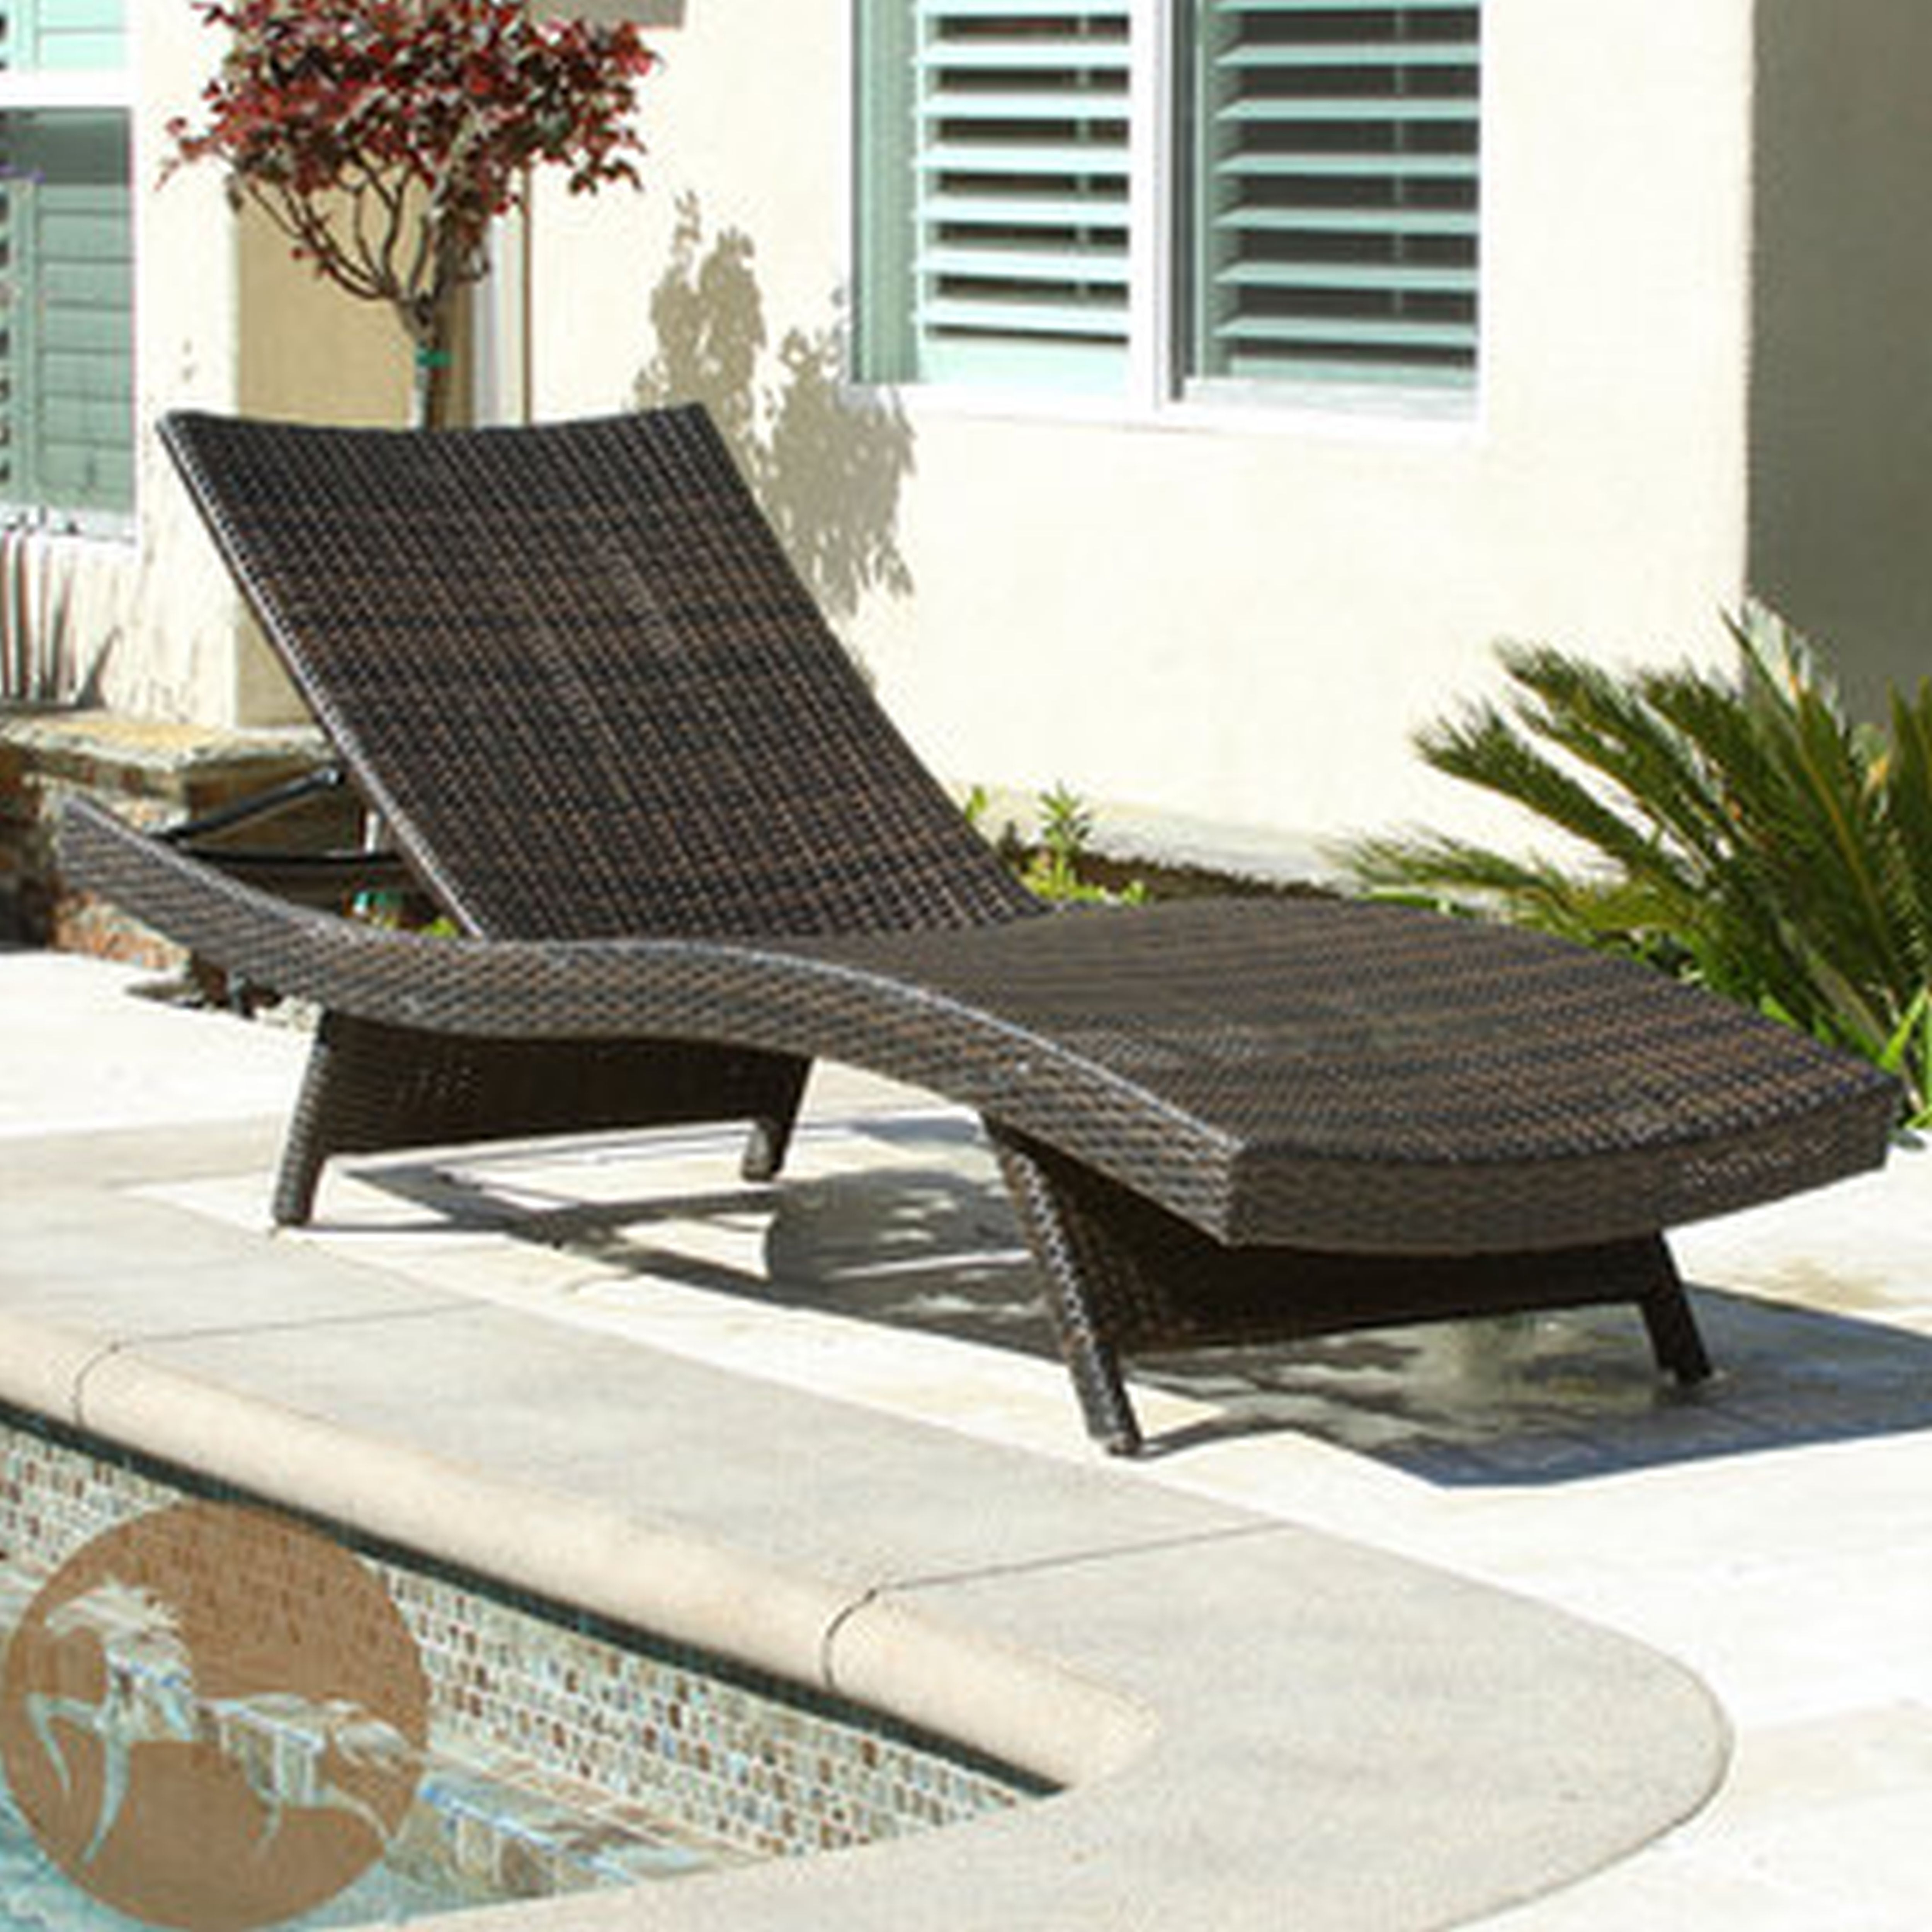 Plastic Chaise Lounge Chairs For Outdoors With 2017 Outdoor : Patio Chaise Lounge Chairs Pool Lounge Chairs Chaise (View 11 of 15)